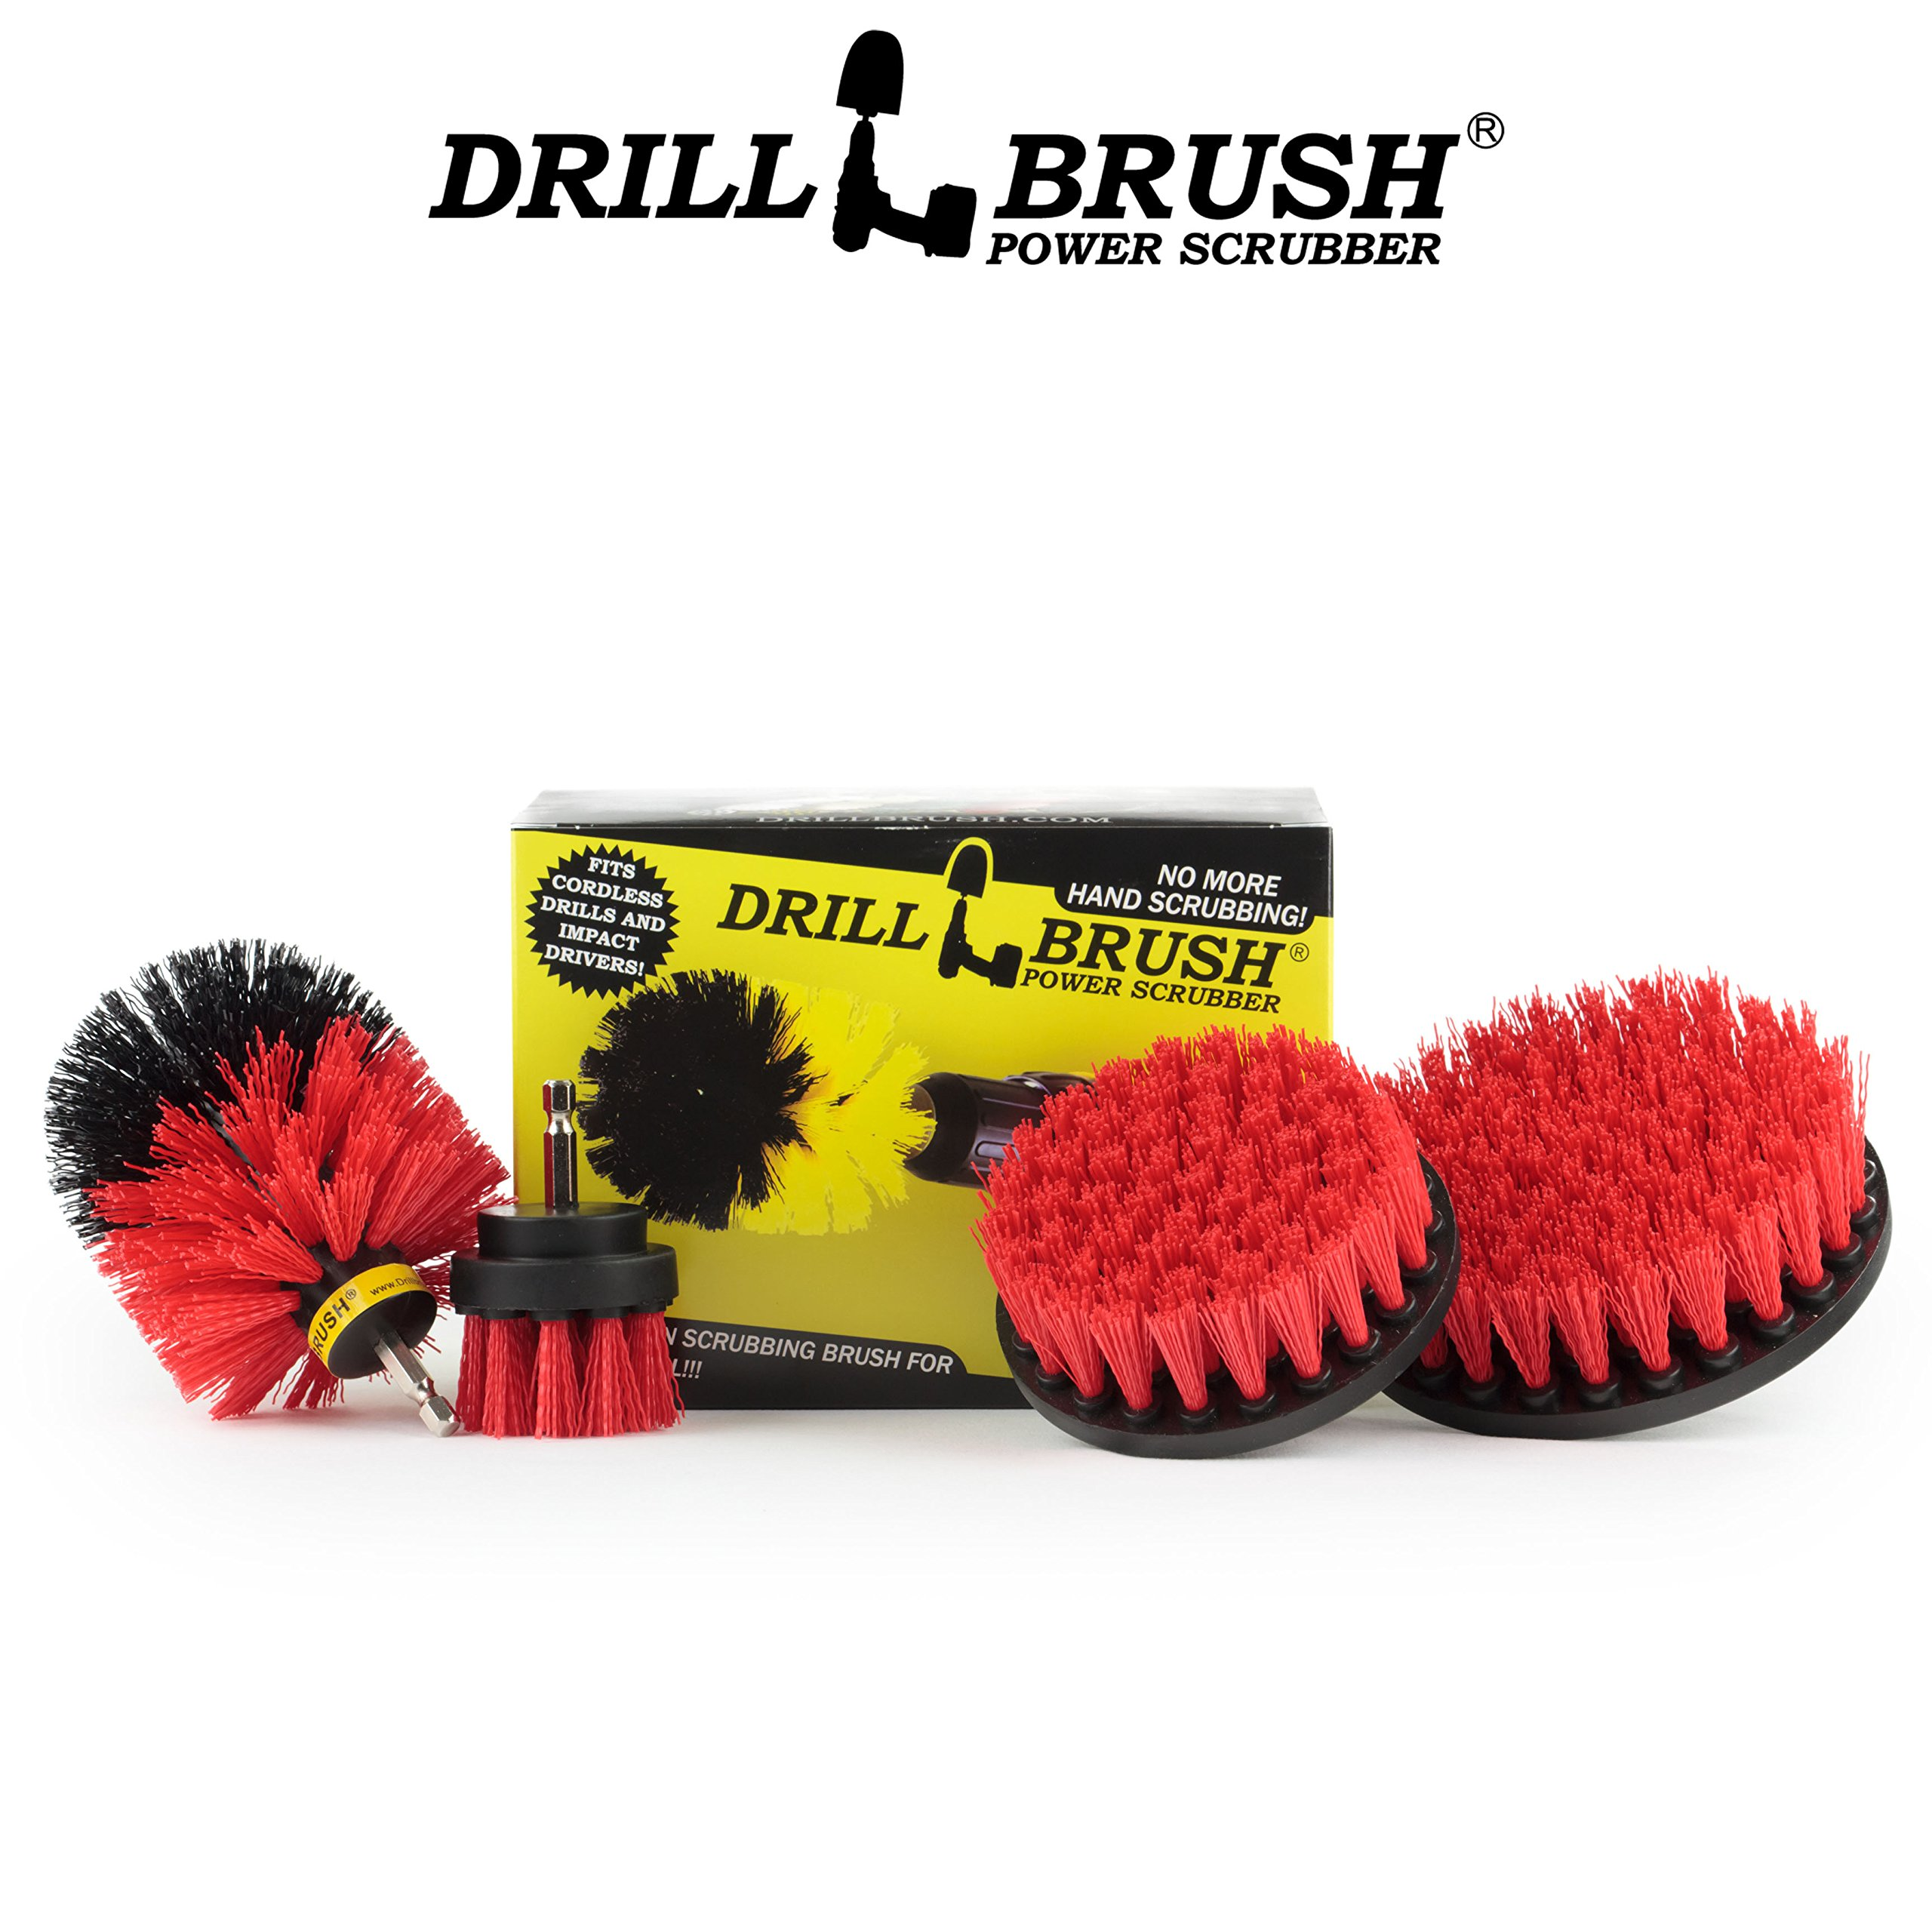 Stiff Bristle 4 Piece Drill Brush Nylon Cordless Drill Powered Spinning Brush Heavy Duty Scrubbing by Drillbrush by Drillbrush (Image #6)